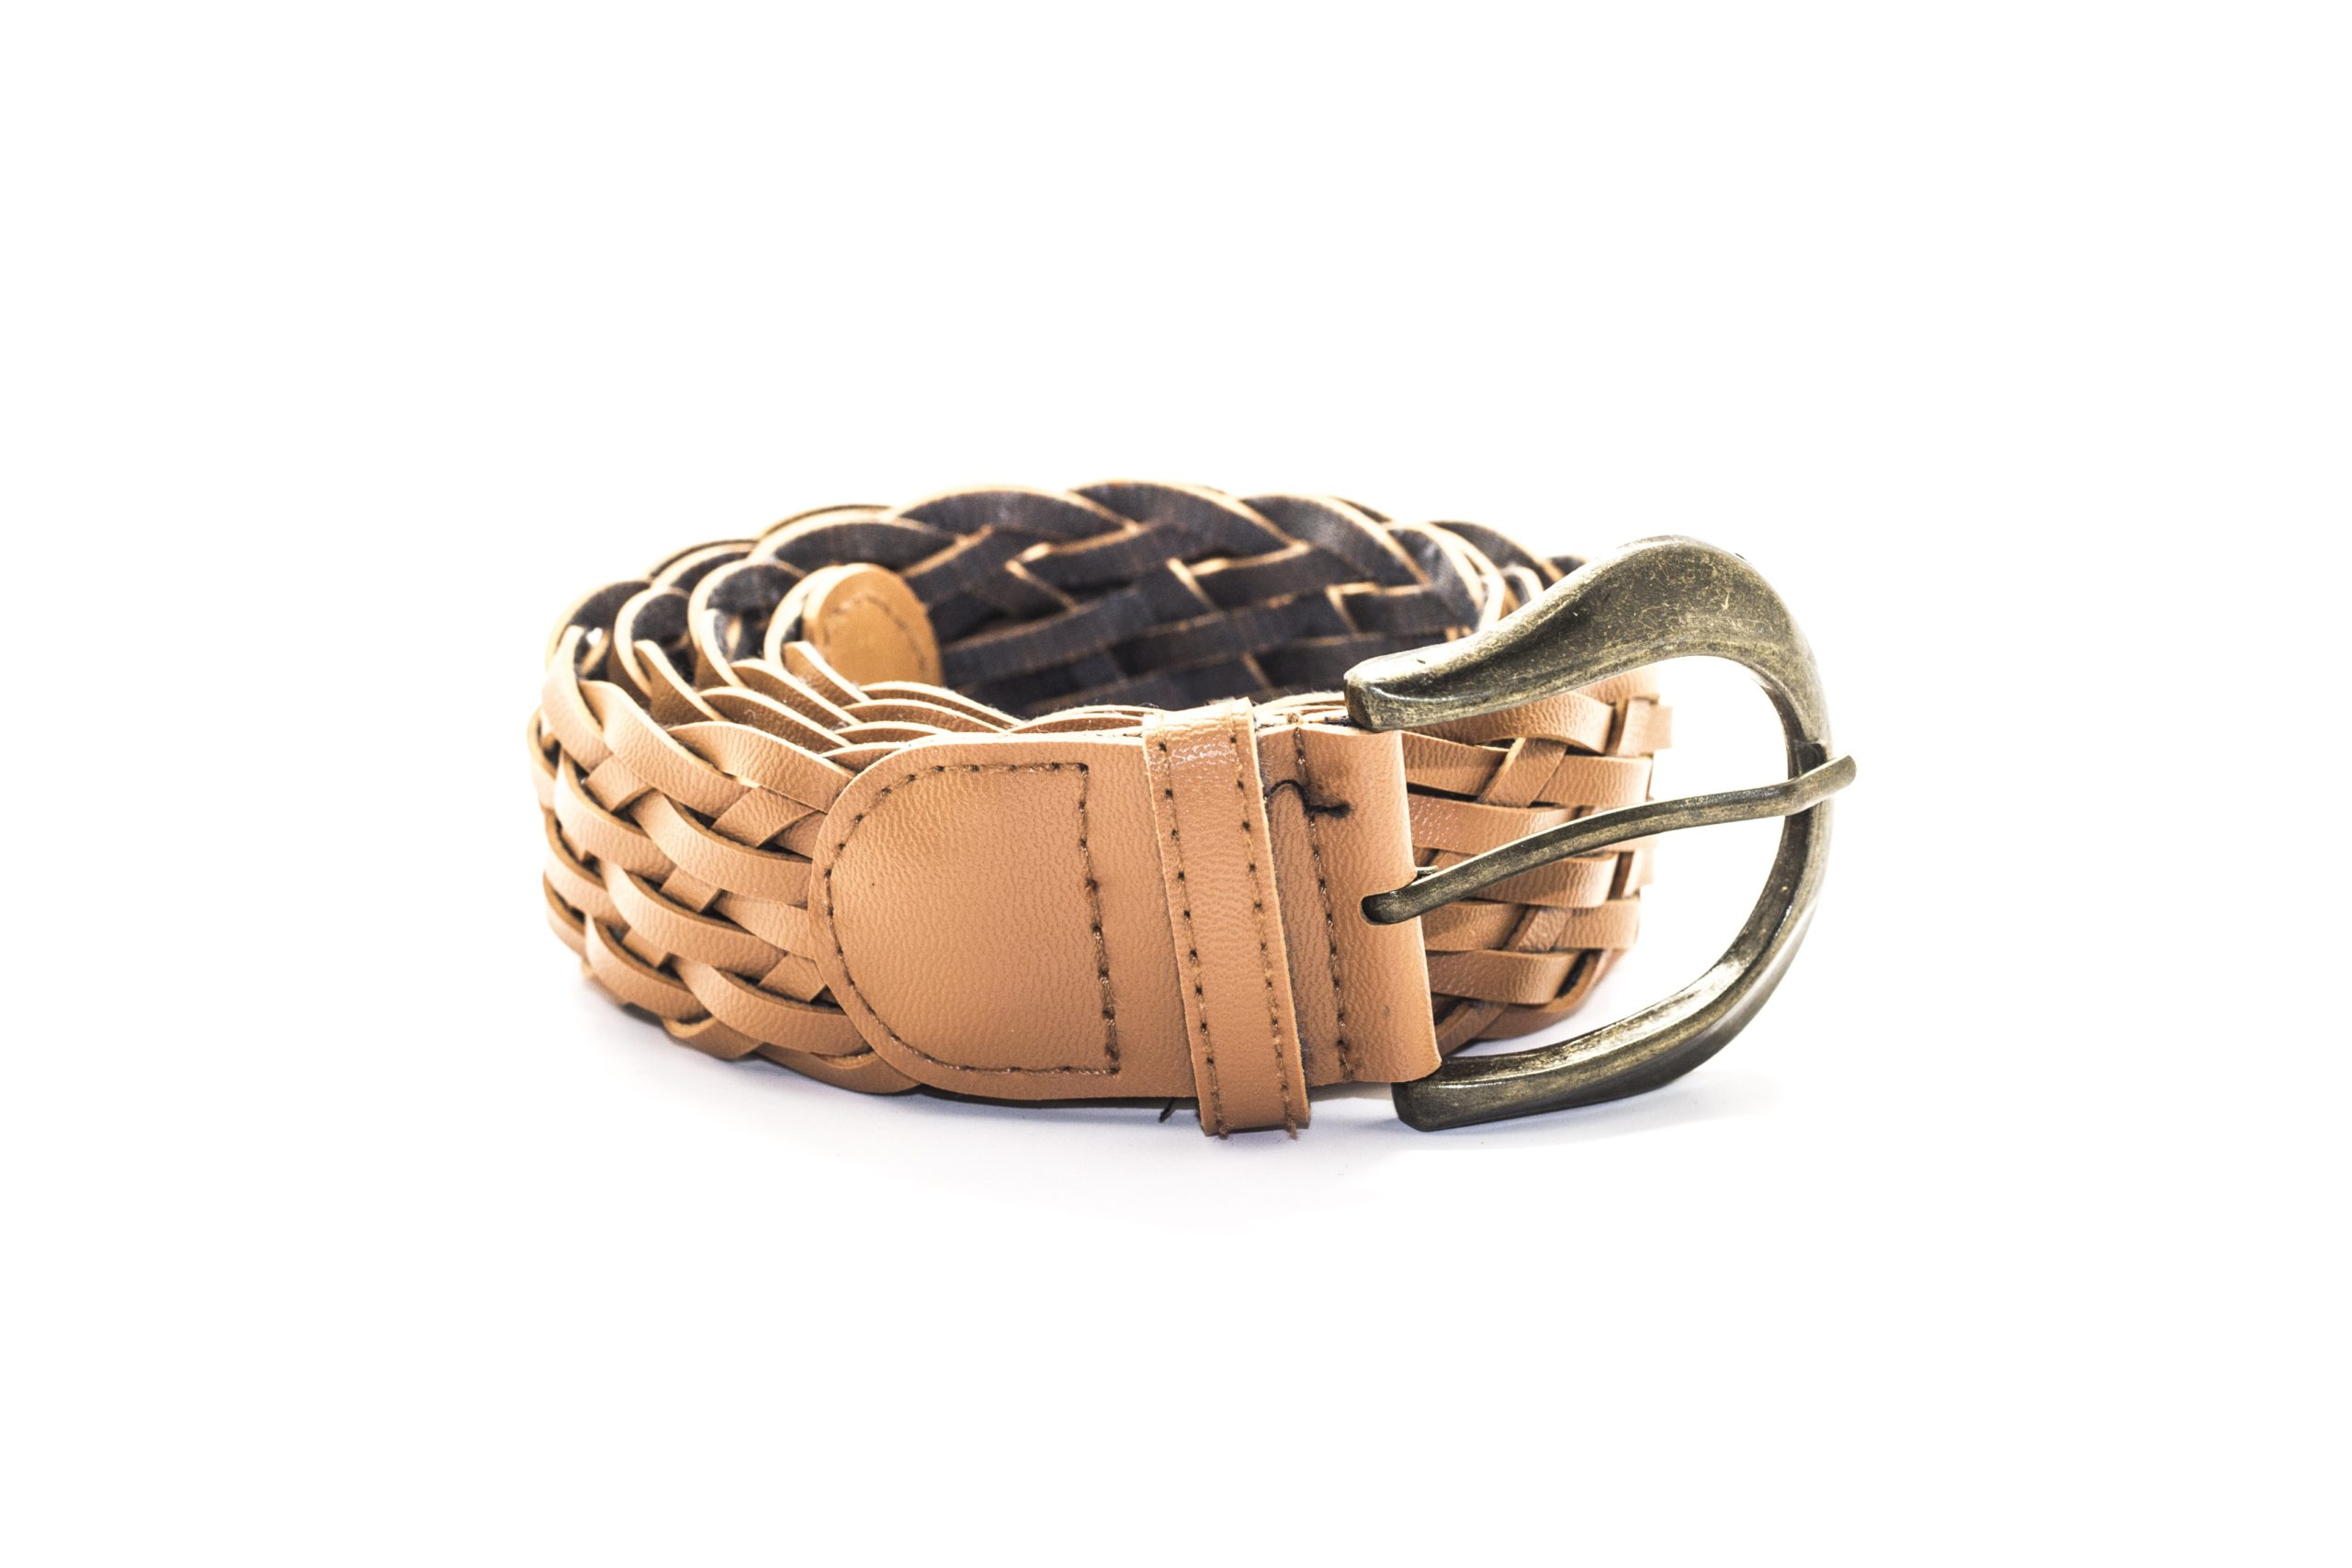 Brown braided leather belt in white background